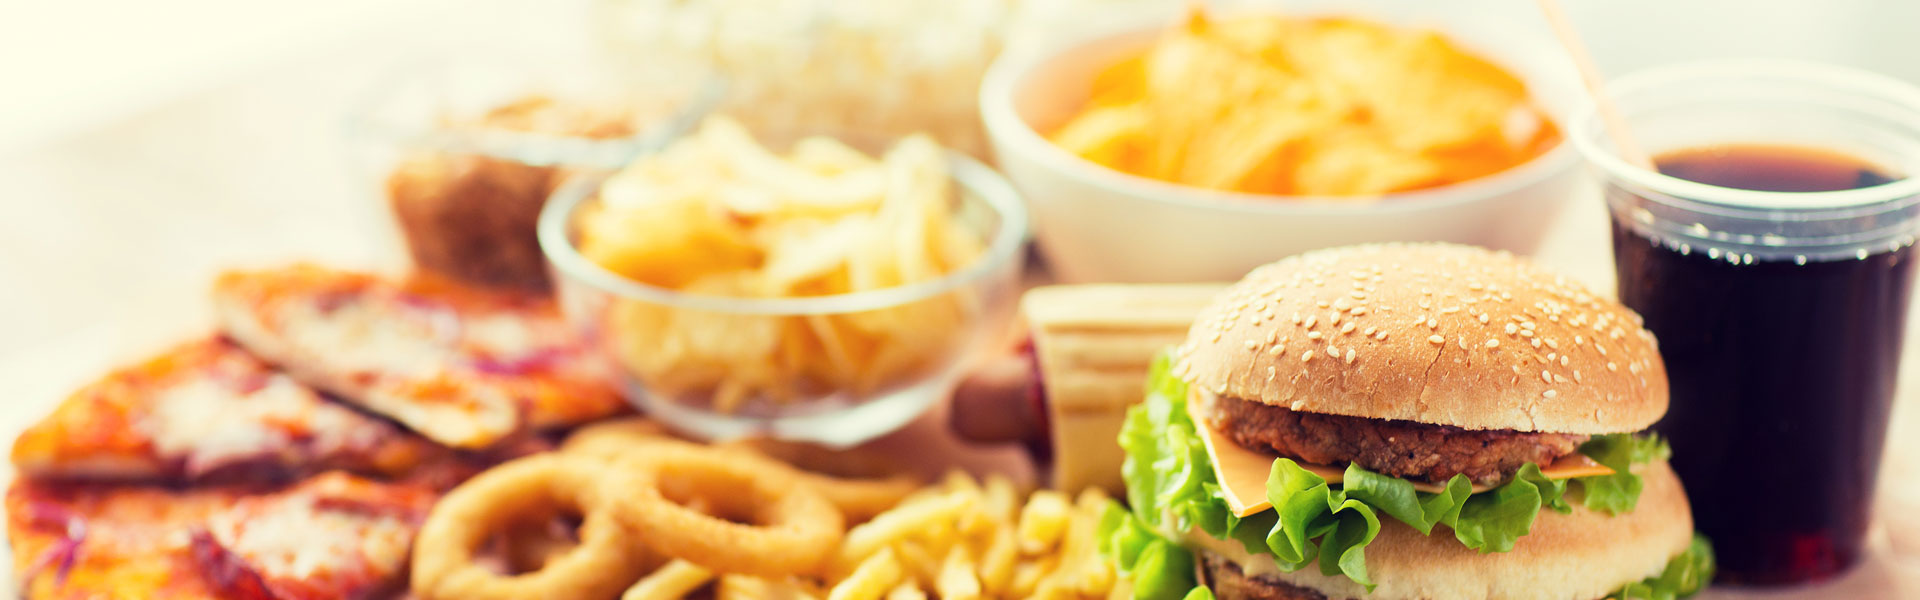 What Foods Not To Eat After Gallbladder Surgery